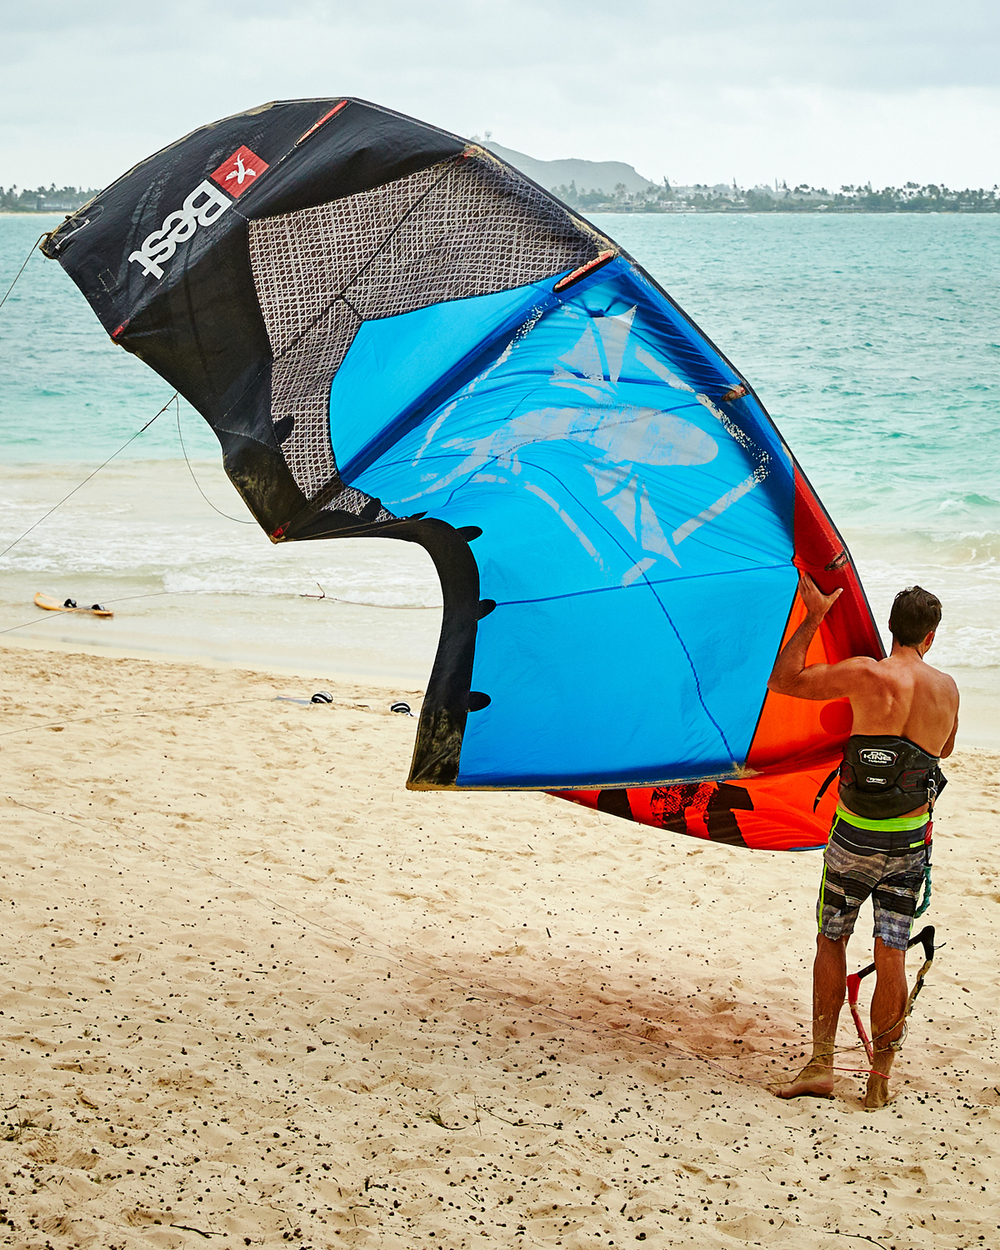 KITEBOARDER AT KAILUA BEACH PARK